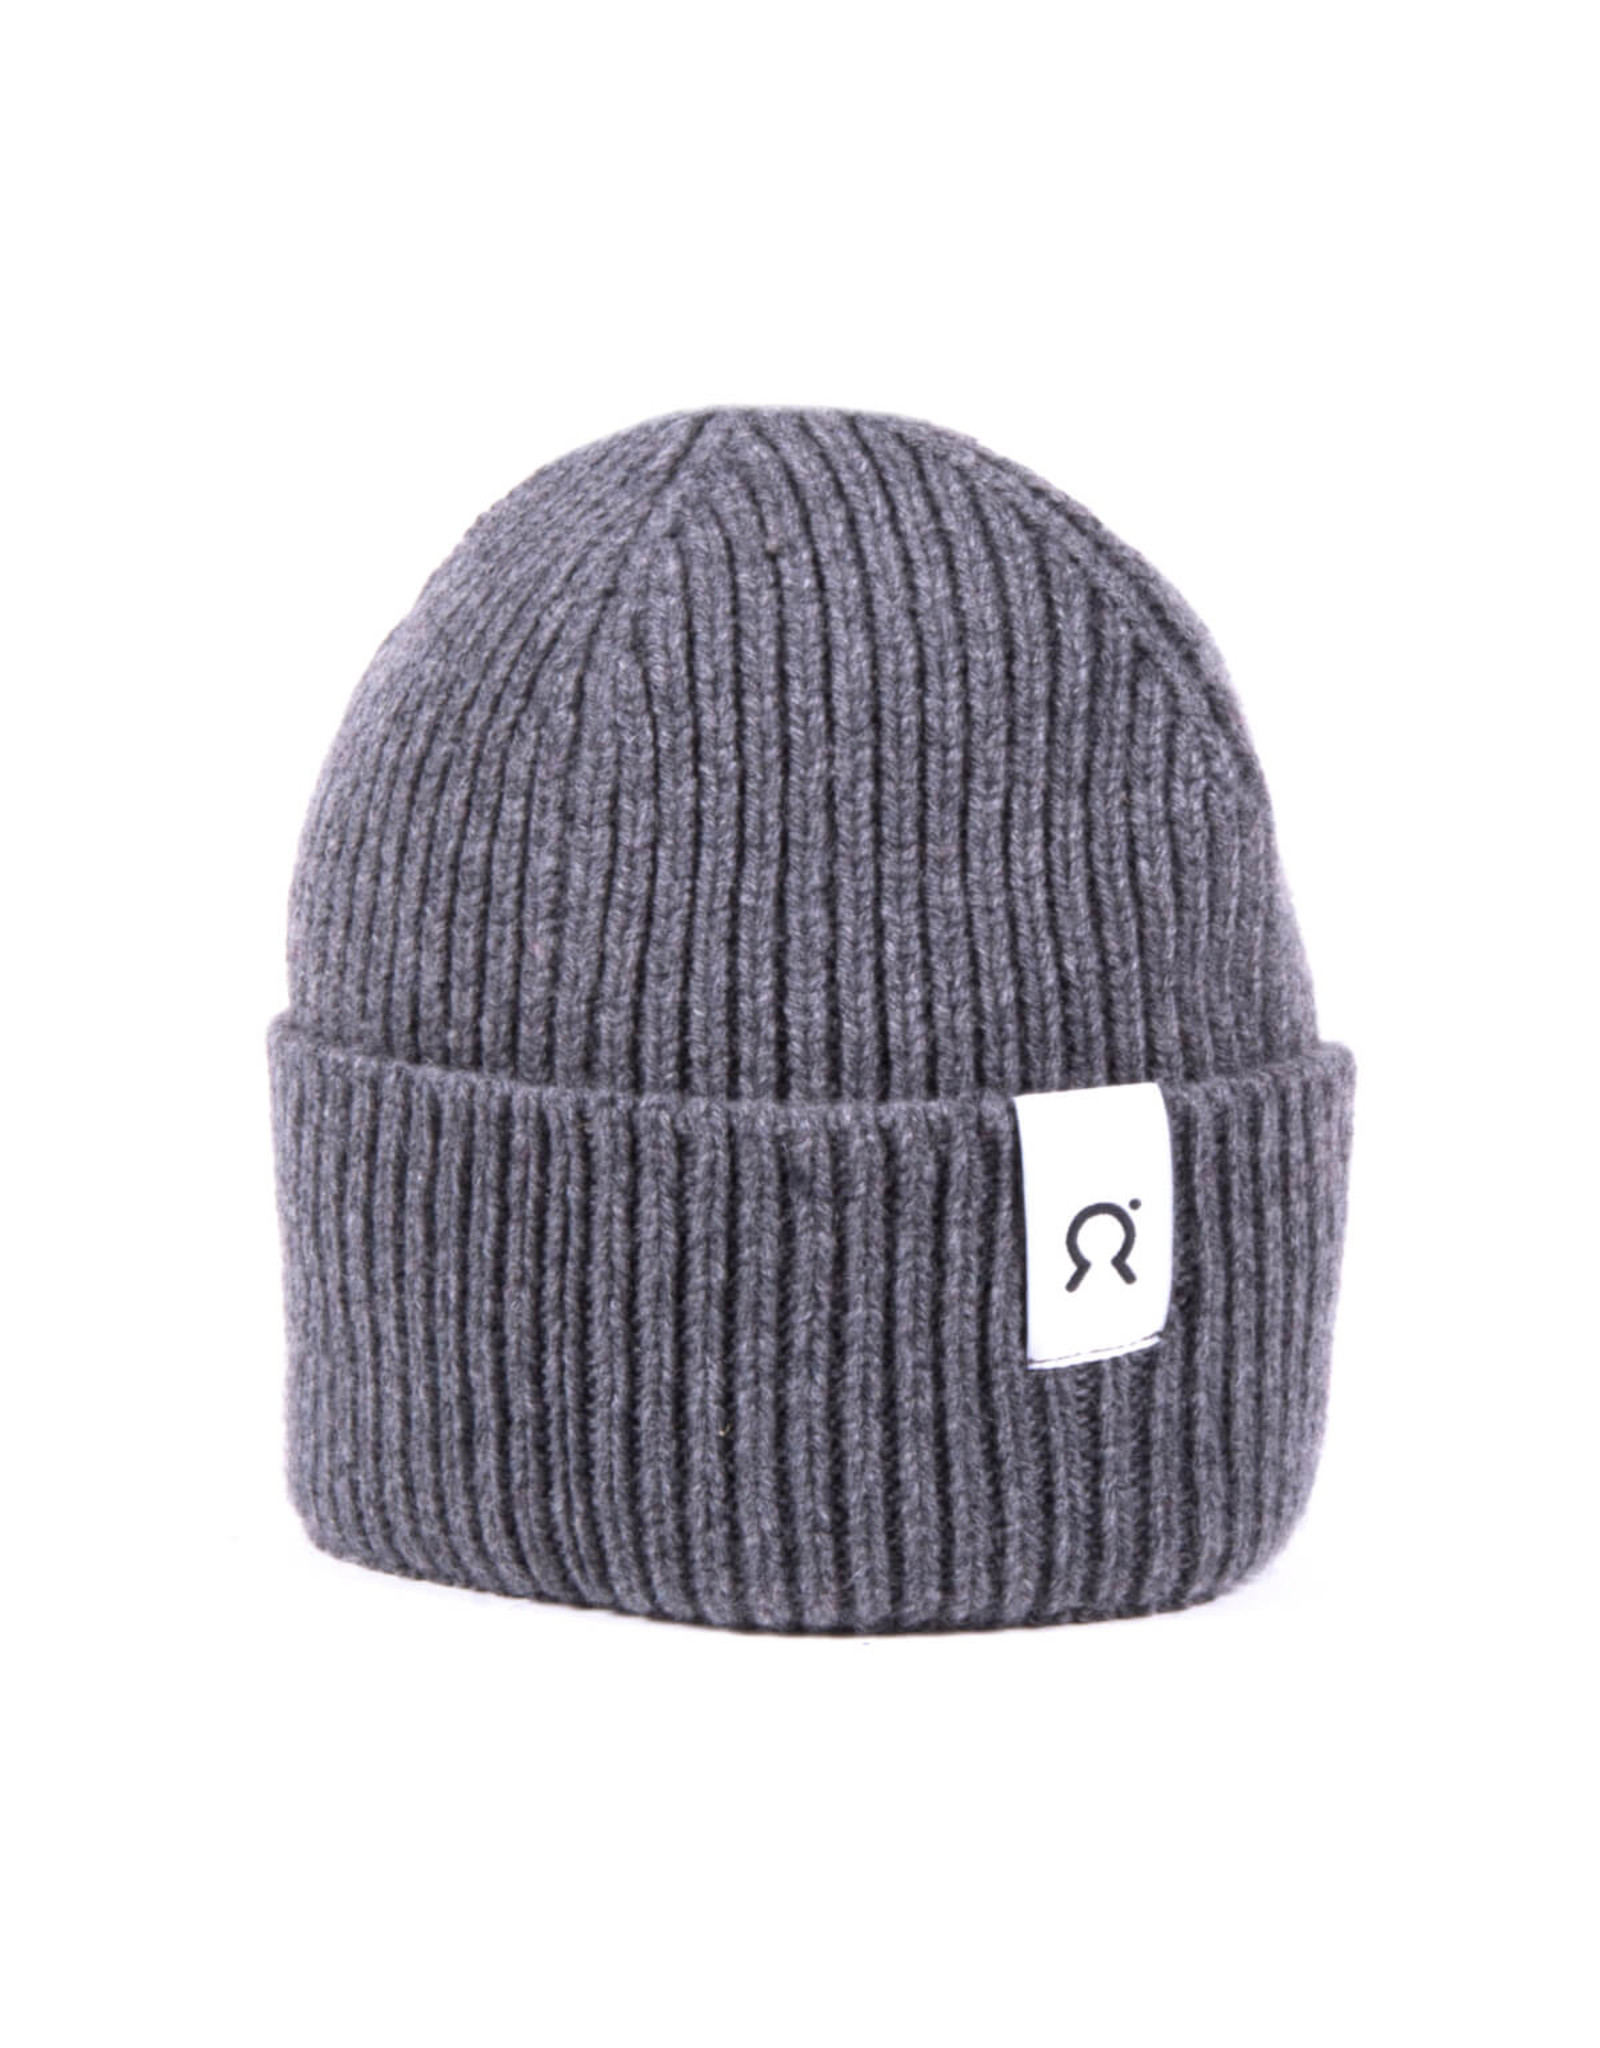 Rifò Recycled Cashmere Beanie - Marcello